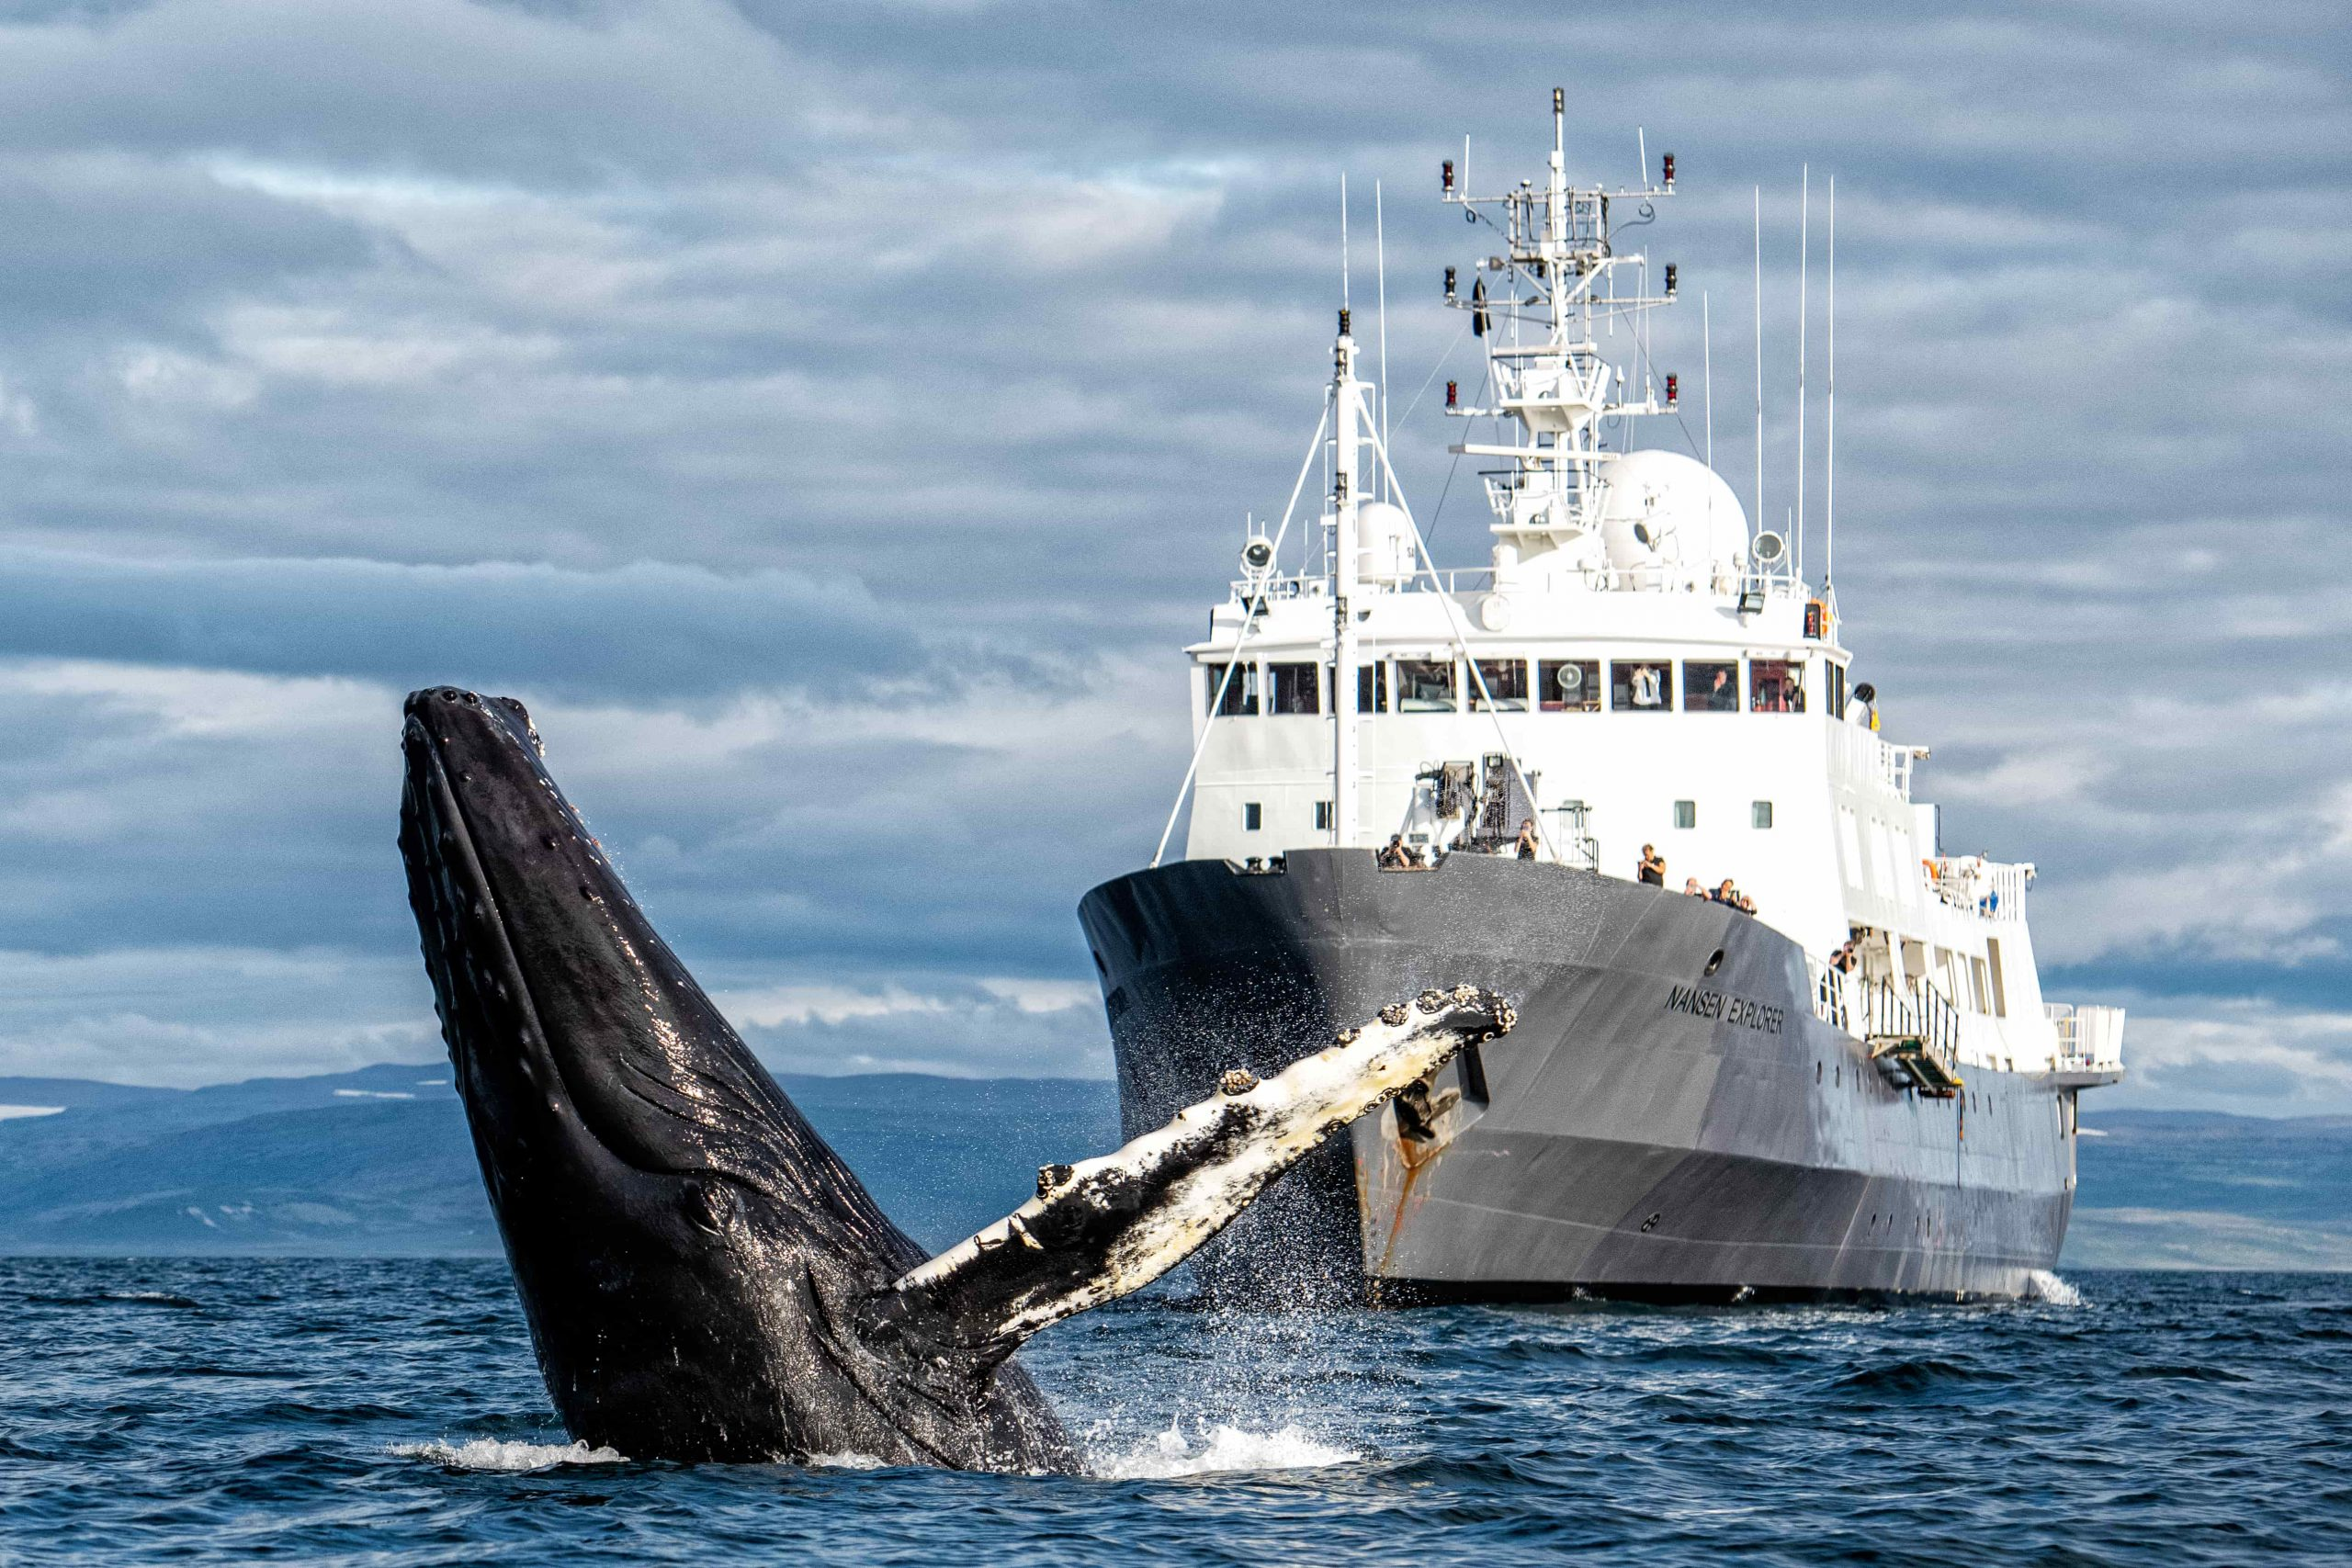 Nansen Explorer with Breaching Whale in the Foreground